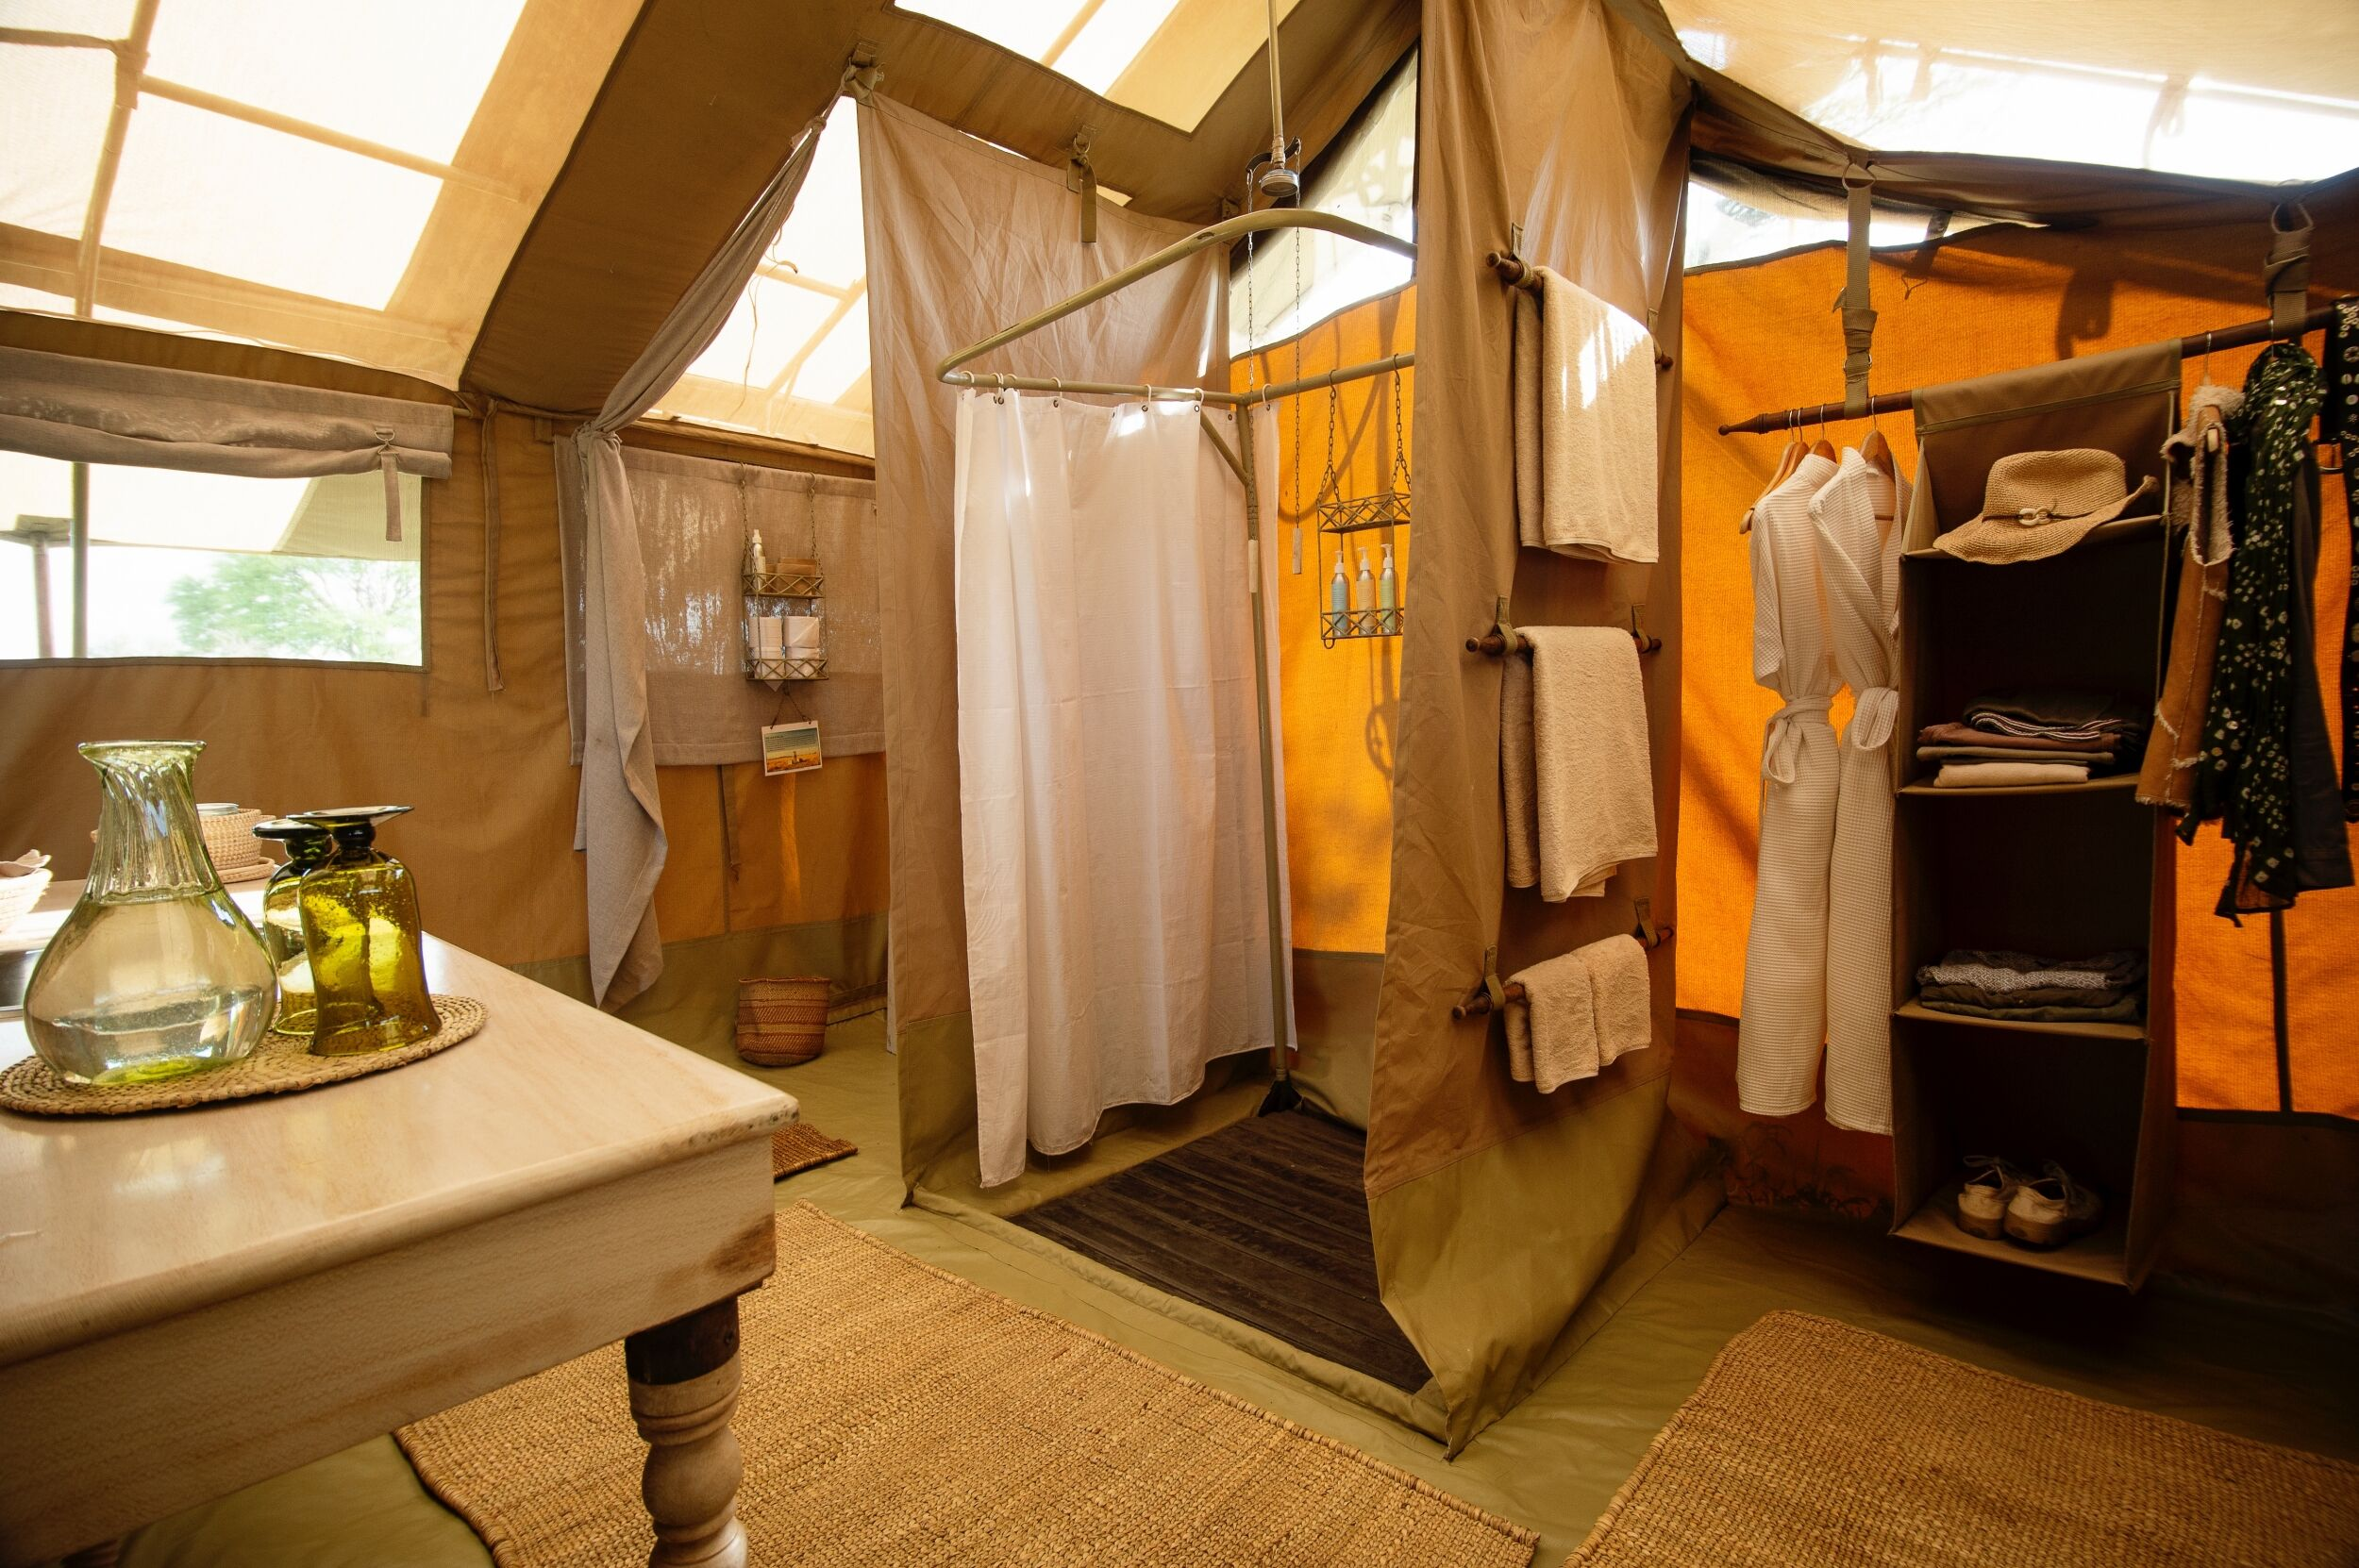 Serengeti_Safari_Camp_Bathroom.jpeg